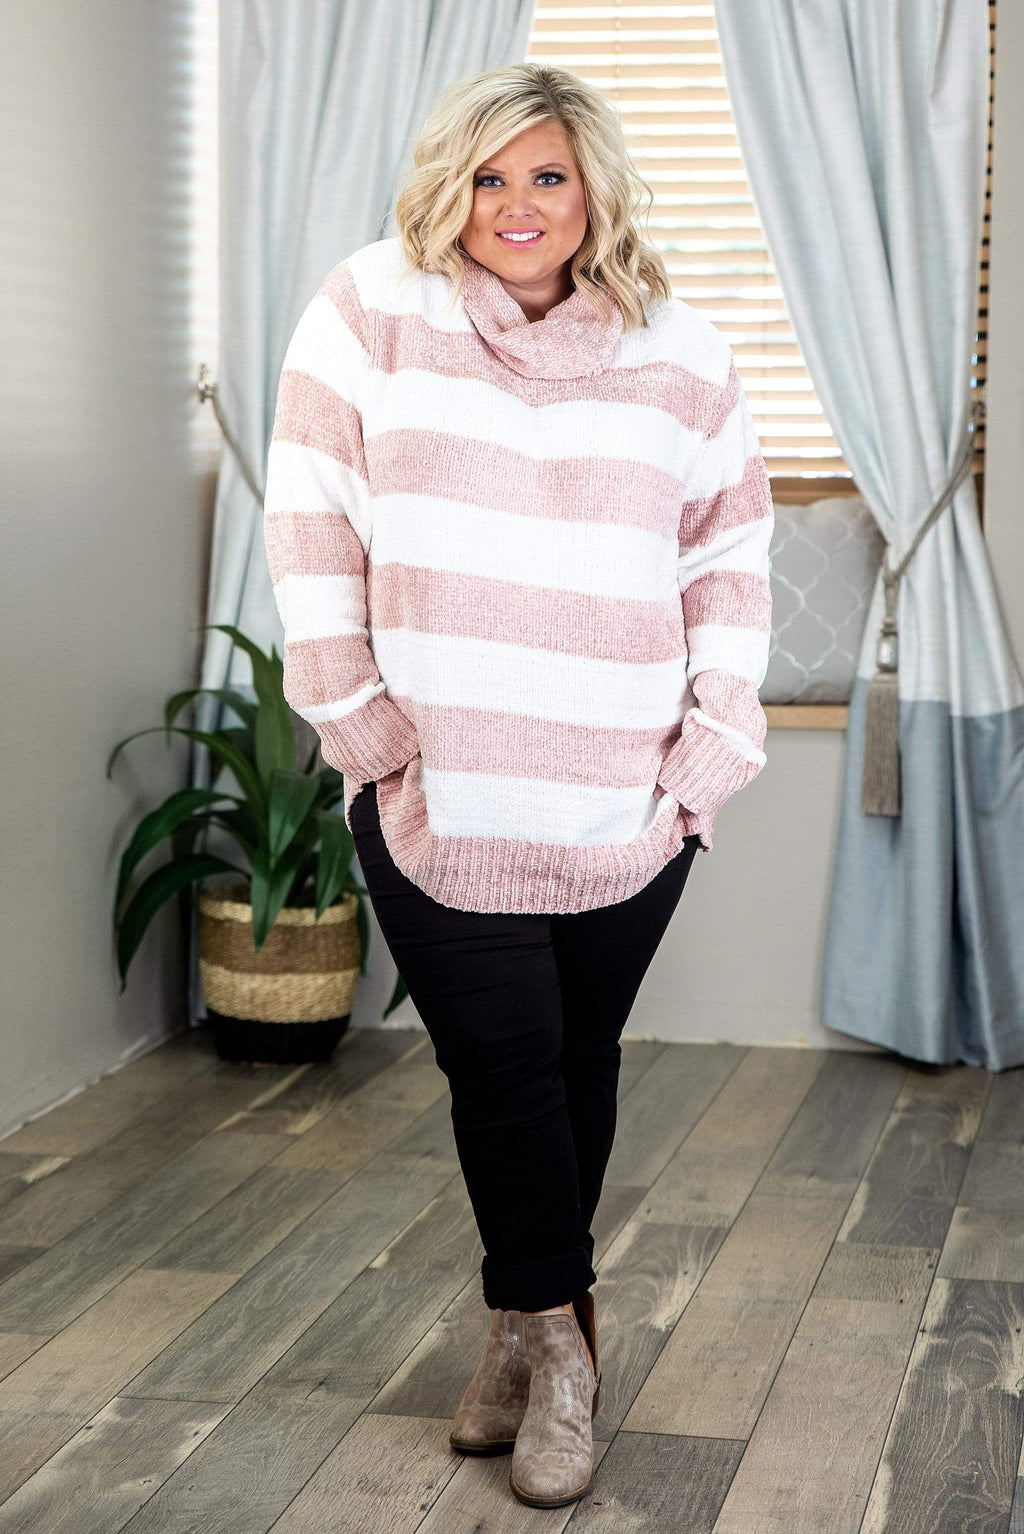 Glitzy Girlz Boutique Curvy Cabin Fever, Ivory/Blush, Plus Size Top